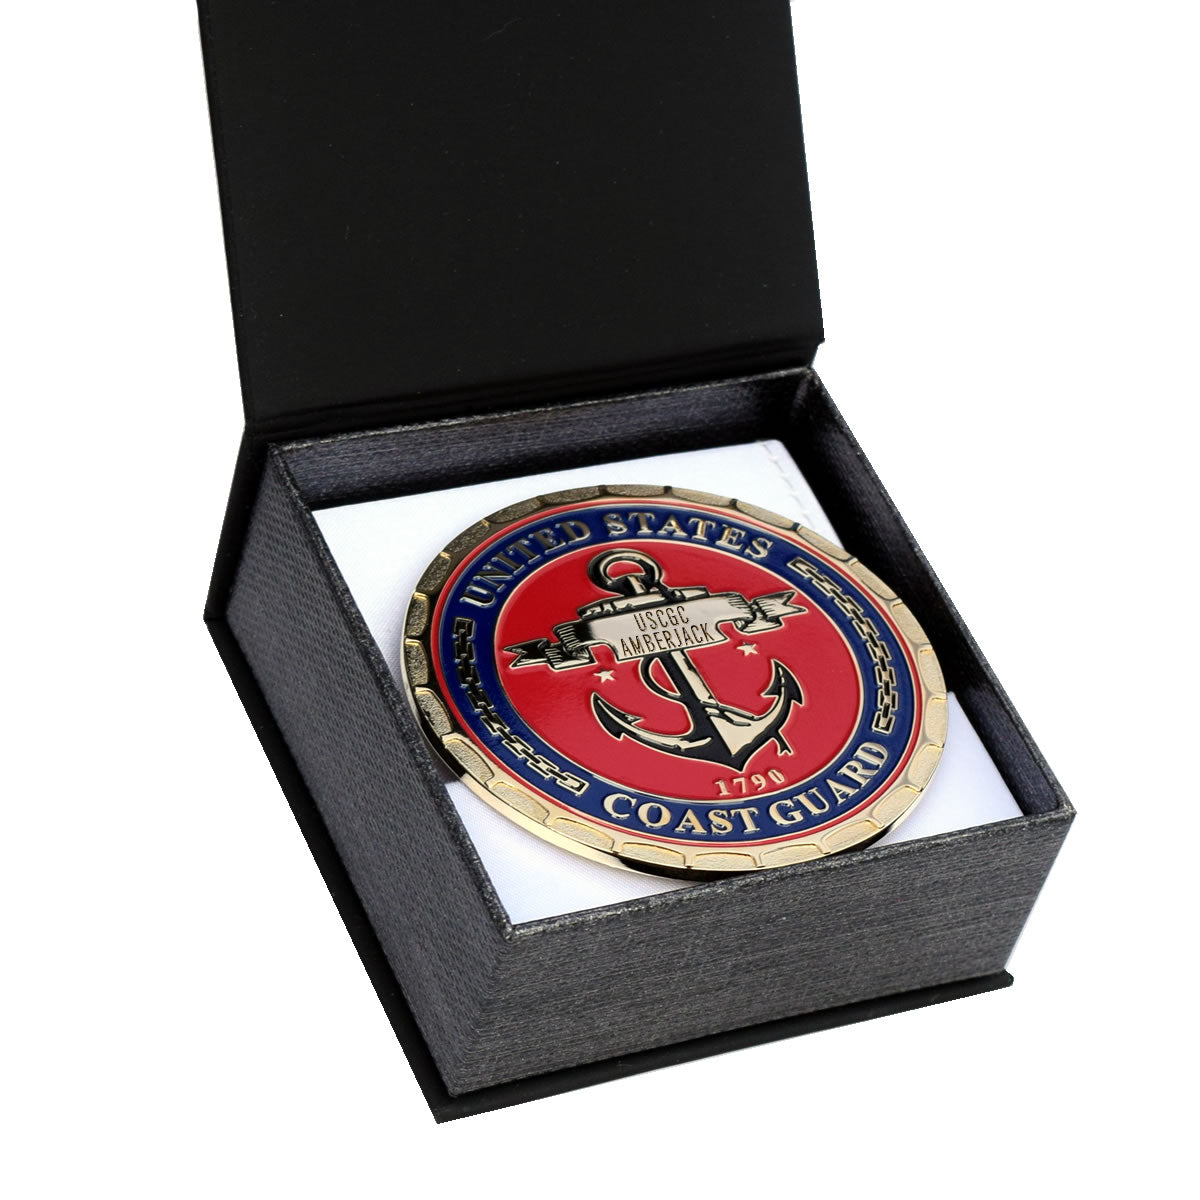 USCGC AMBERJACK WPB-87315 COAST GUARD PLAQUE